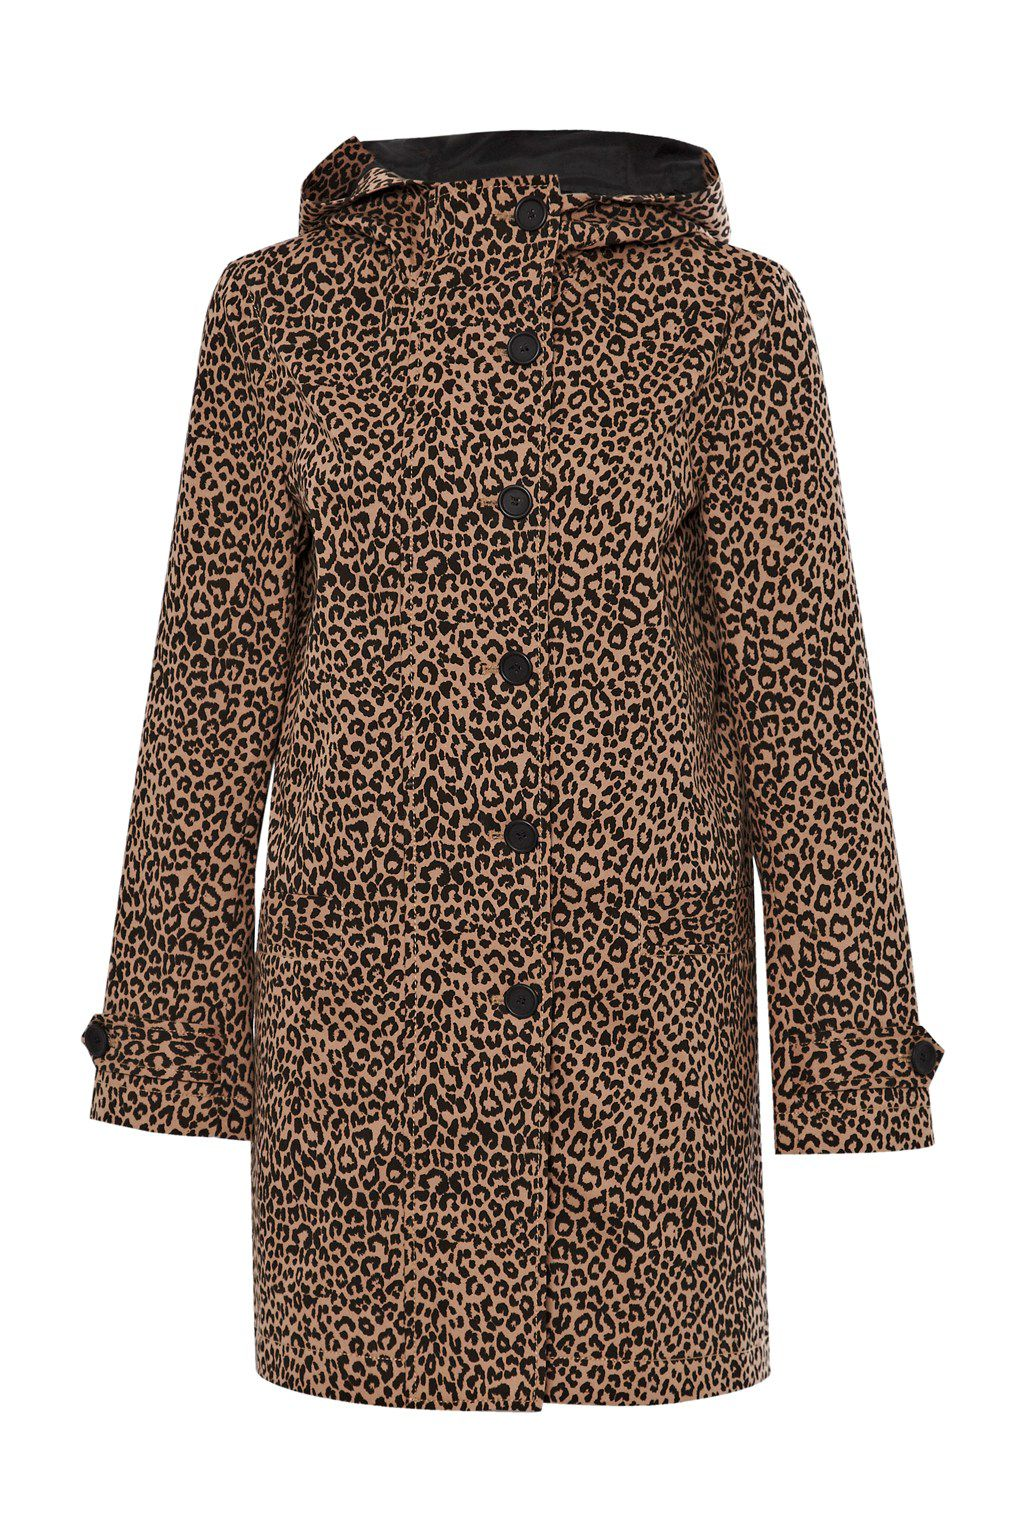 Top cat print mac